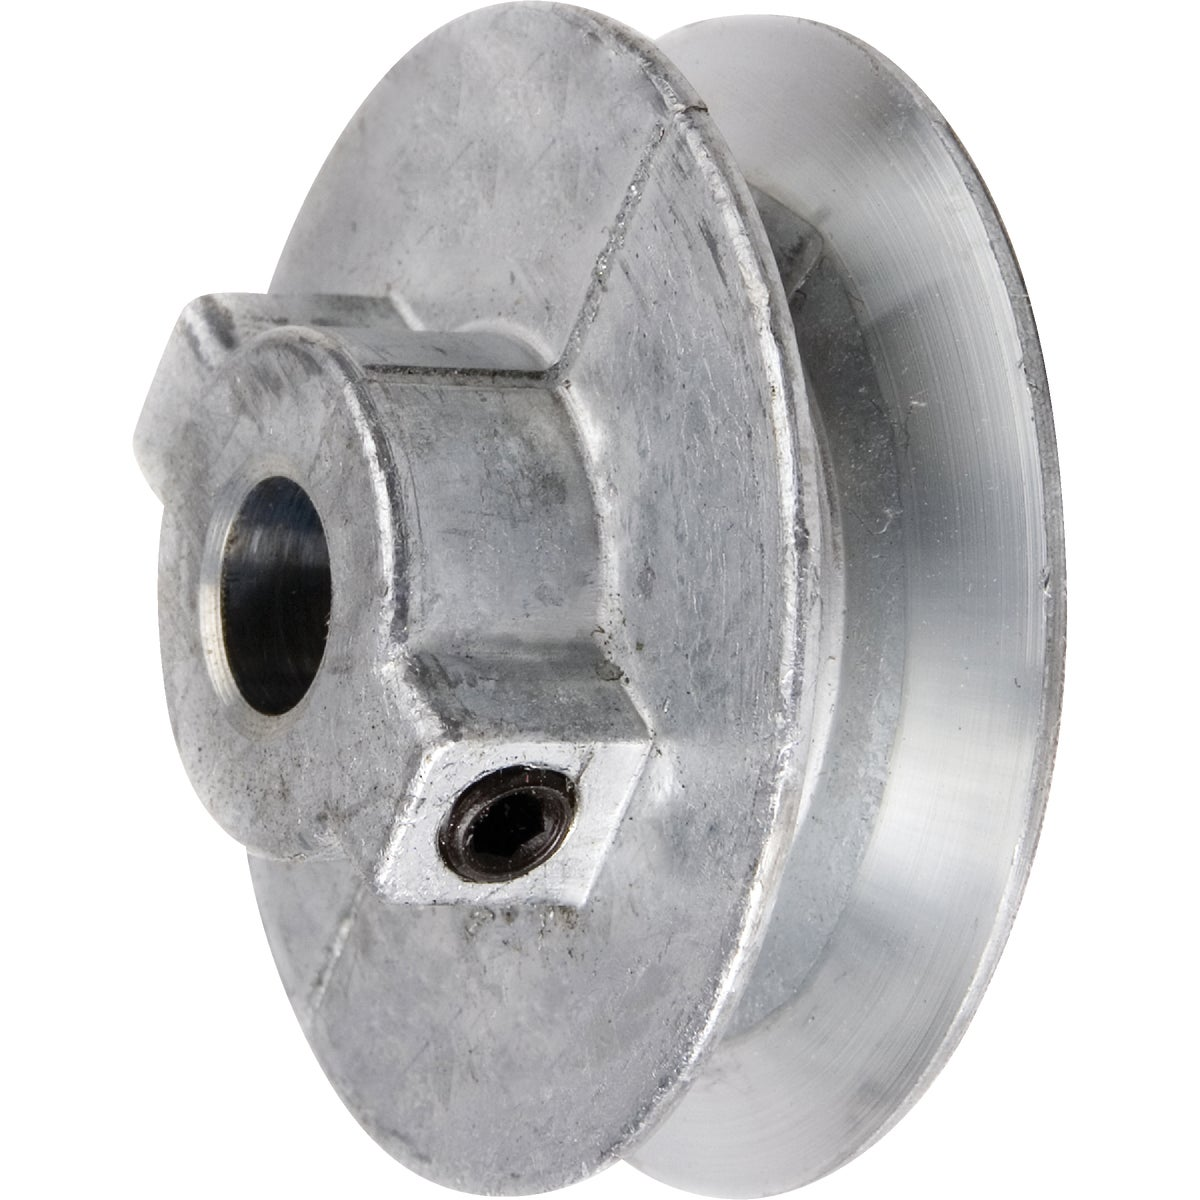 4-1/2X1/2 PULLEY